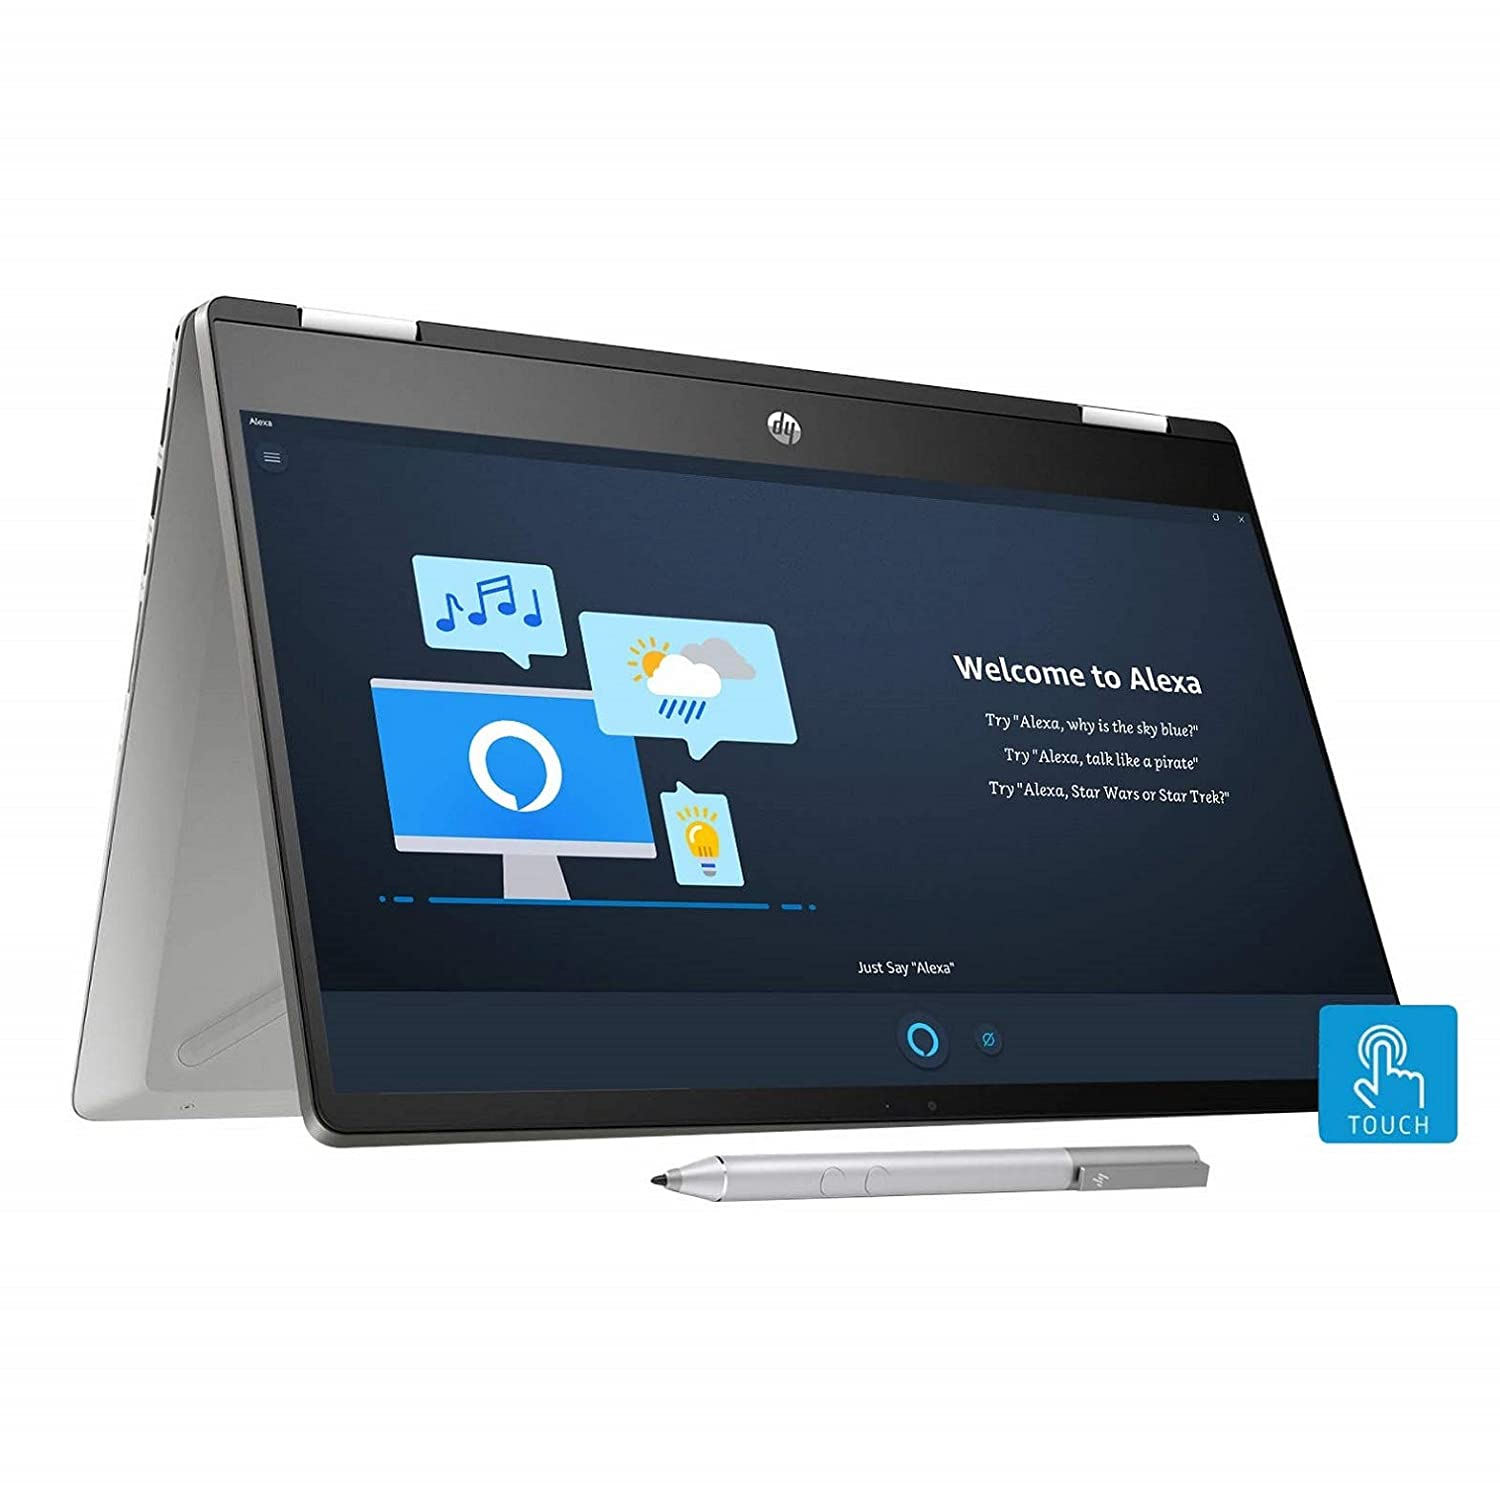 Buy Hp Pavilion X360 Core I3 10th Gen 14 Inch Hd Touchscreen 2 In 1 Alexa Enabled Laptop 4gb 256gb Ssd Windows 10 Ms Office Inking Pen Natural Silver 1 59 Kg 14 Dh1006tu Online At Low Prices In India Amazon In